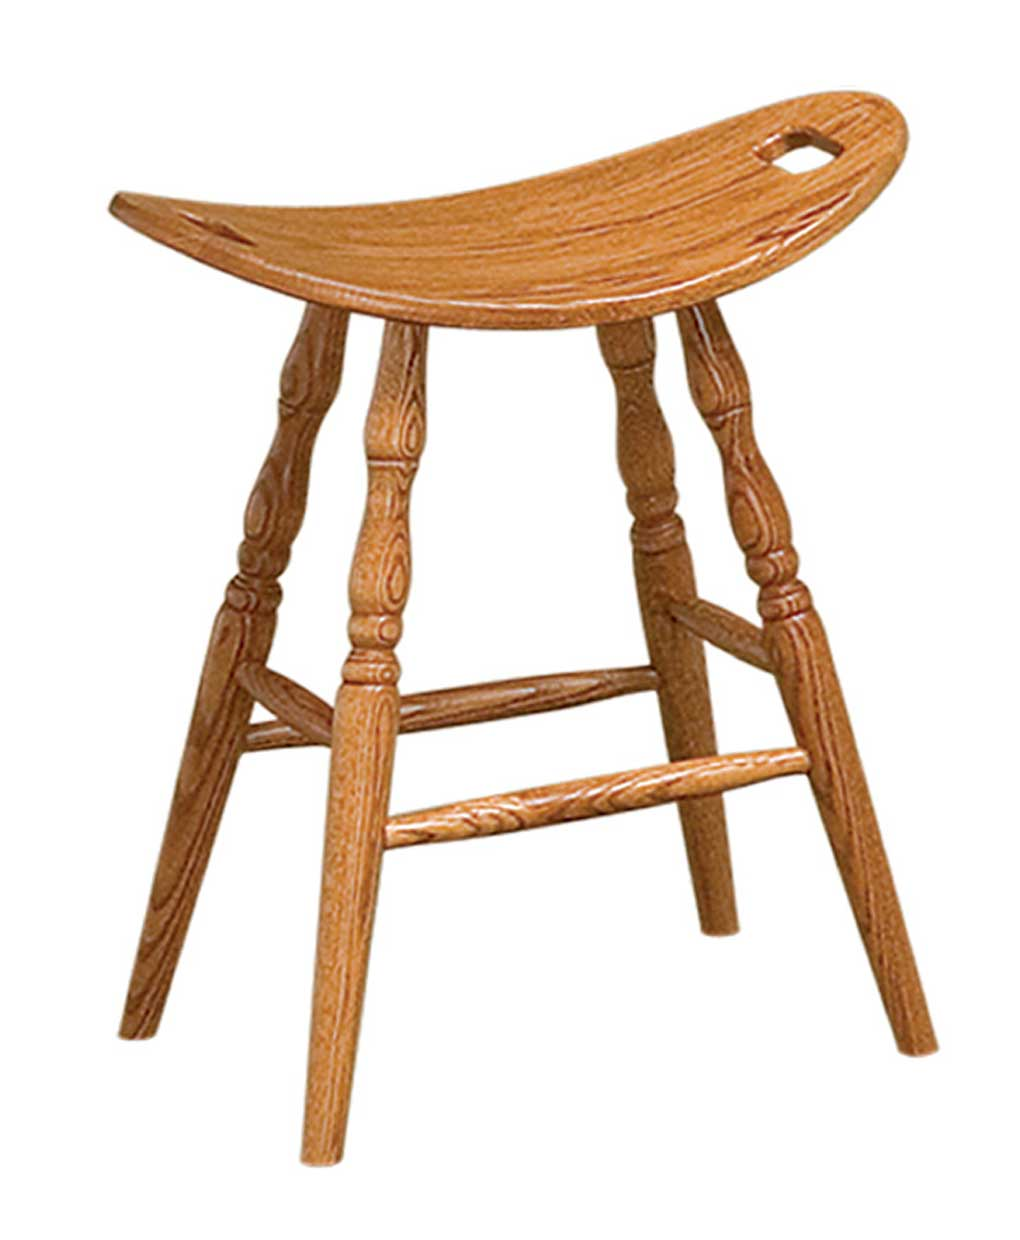 Saddle Bar Stools Saddle Bar Stool - Amish Direct Furniture